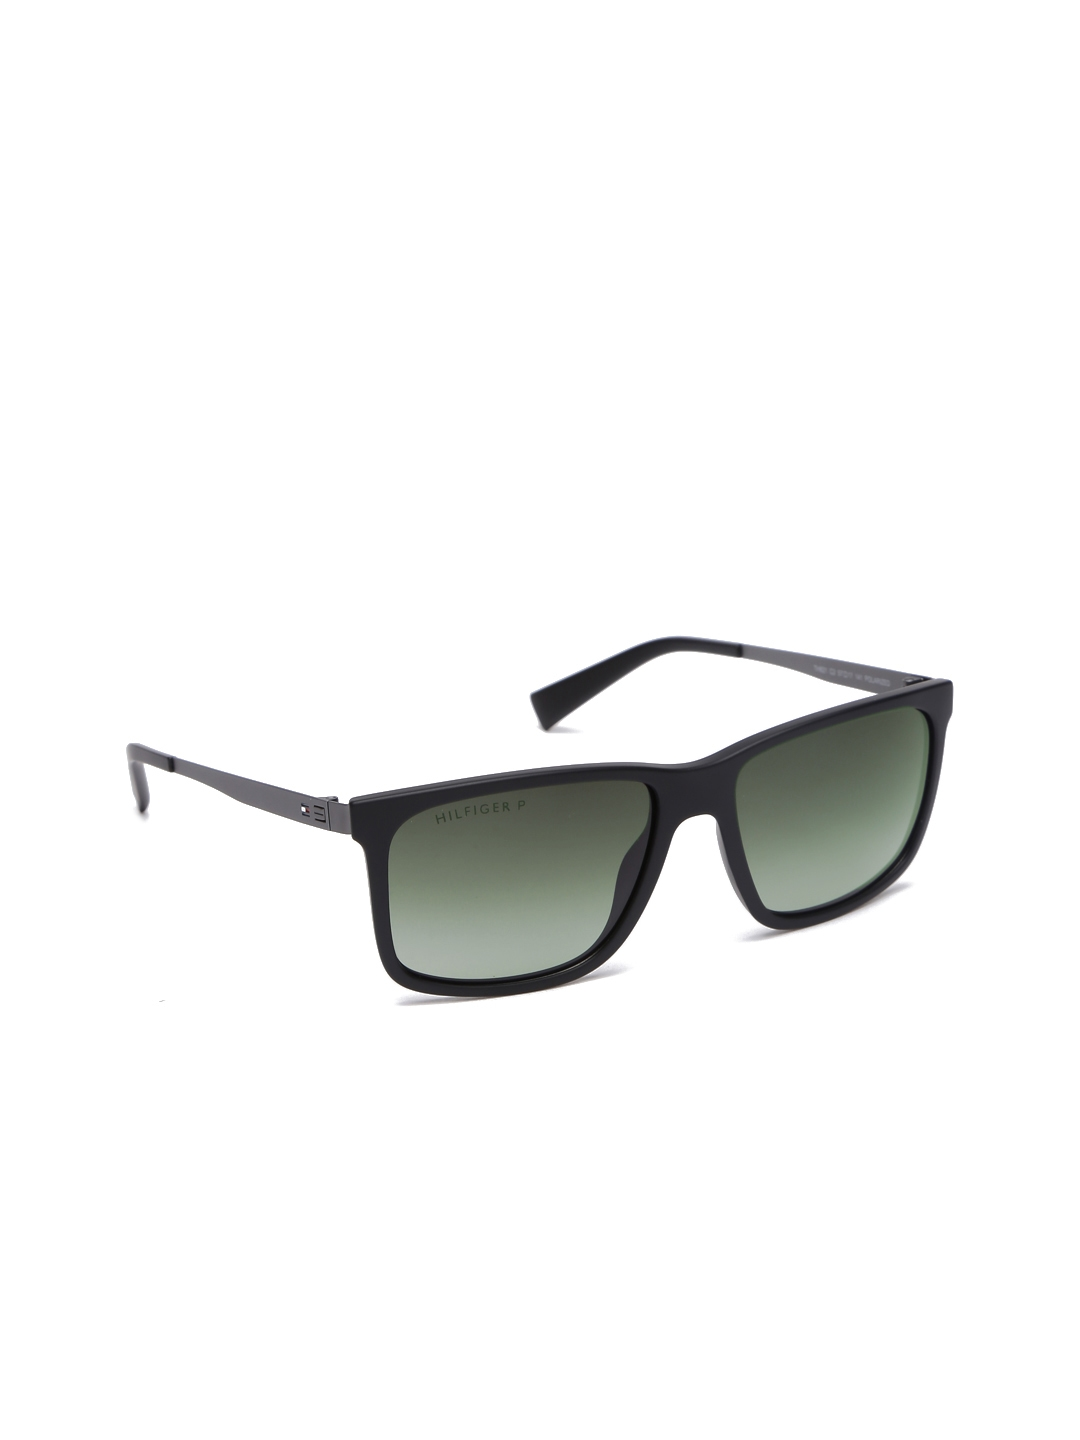 0d59f4cc5ff Buy Tommy Hilfiger Men Wayfarer Sunglasses TH 821 C2 57 S ...